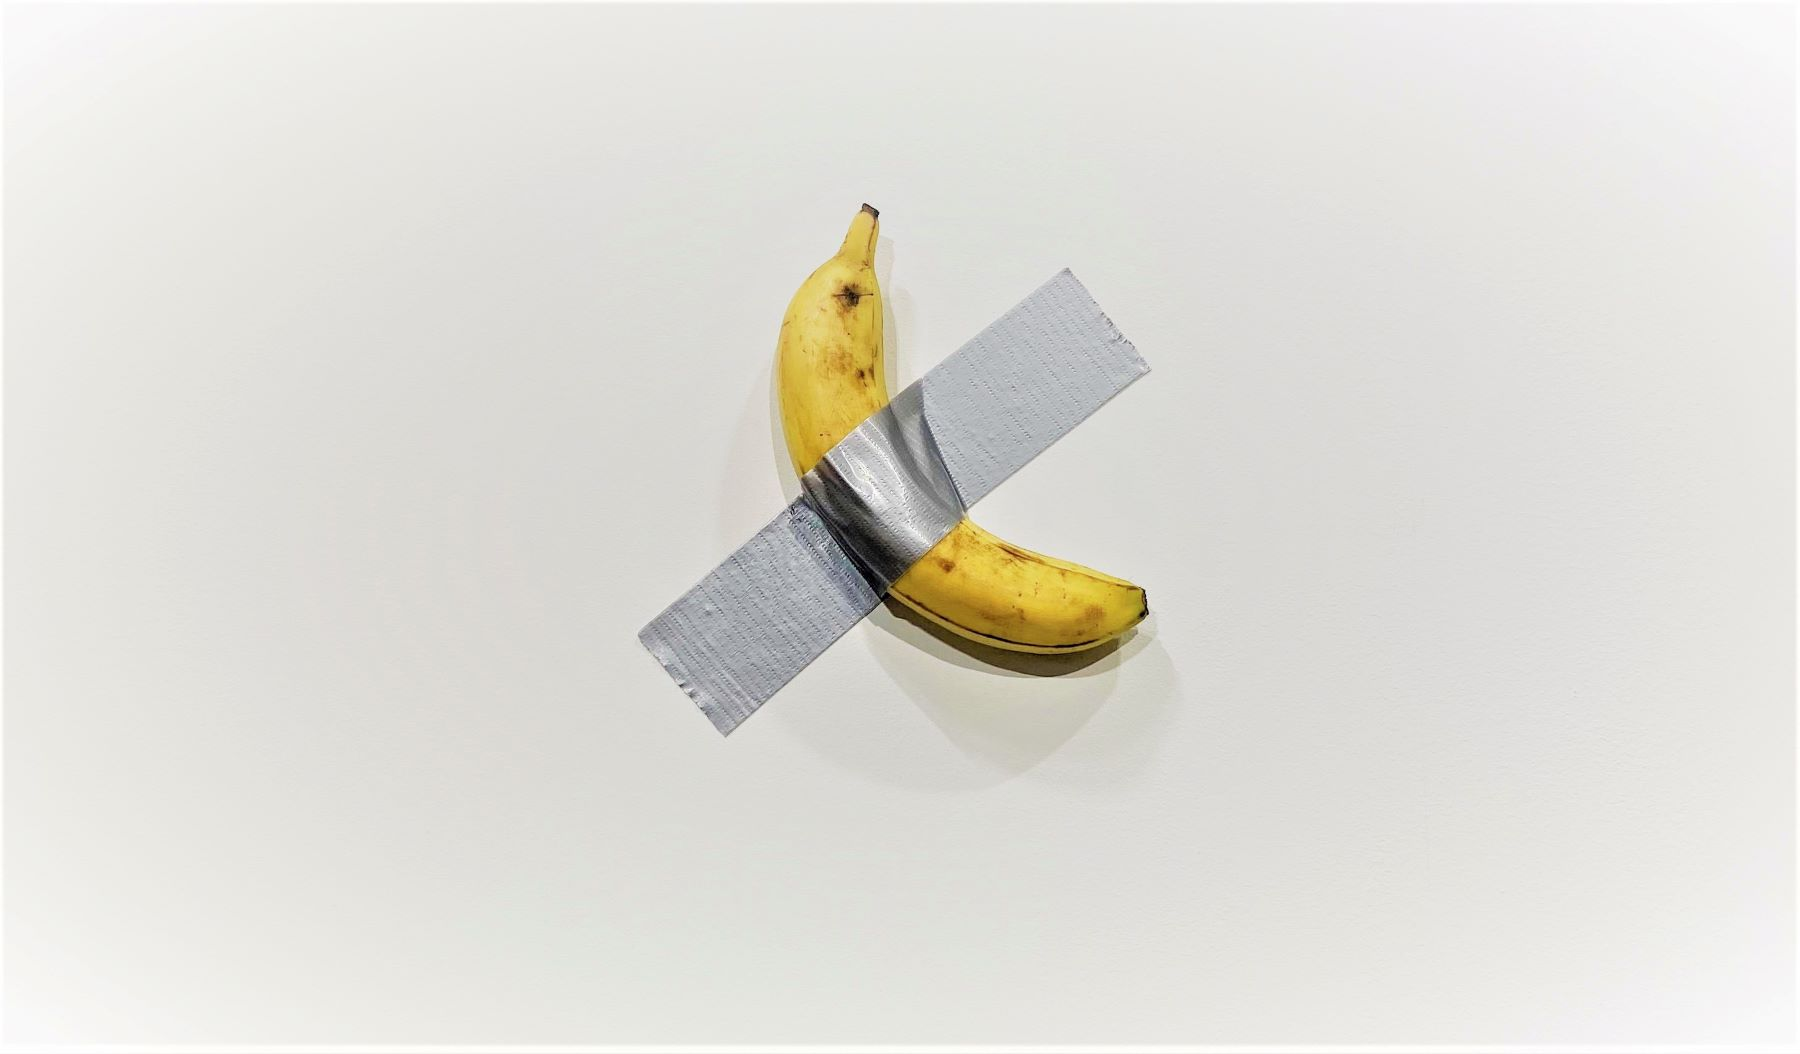 Buyers of Maurizio Cattelan's $120k Banana Defend It as 'the Unicorn of the Art World,' Comparing the Work to Warhol's Soup Cans